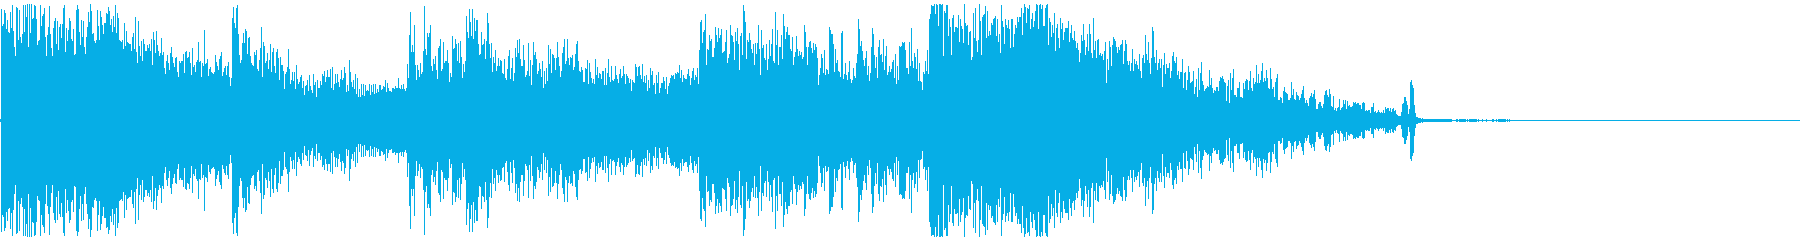 Urban legend mystery, mystery, tension:E's reproduced waveform